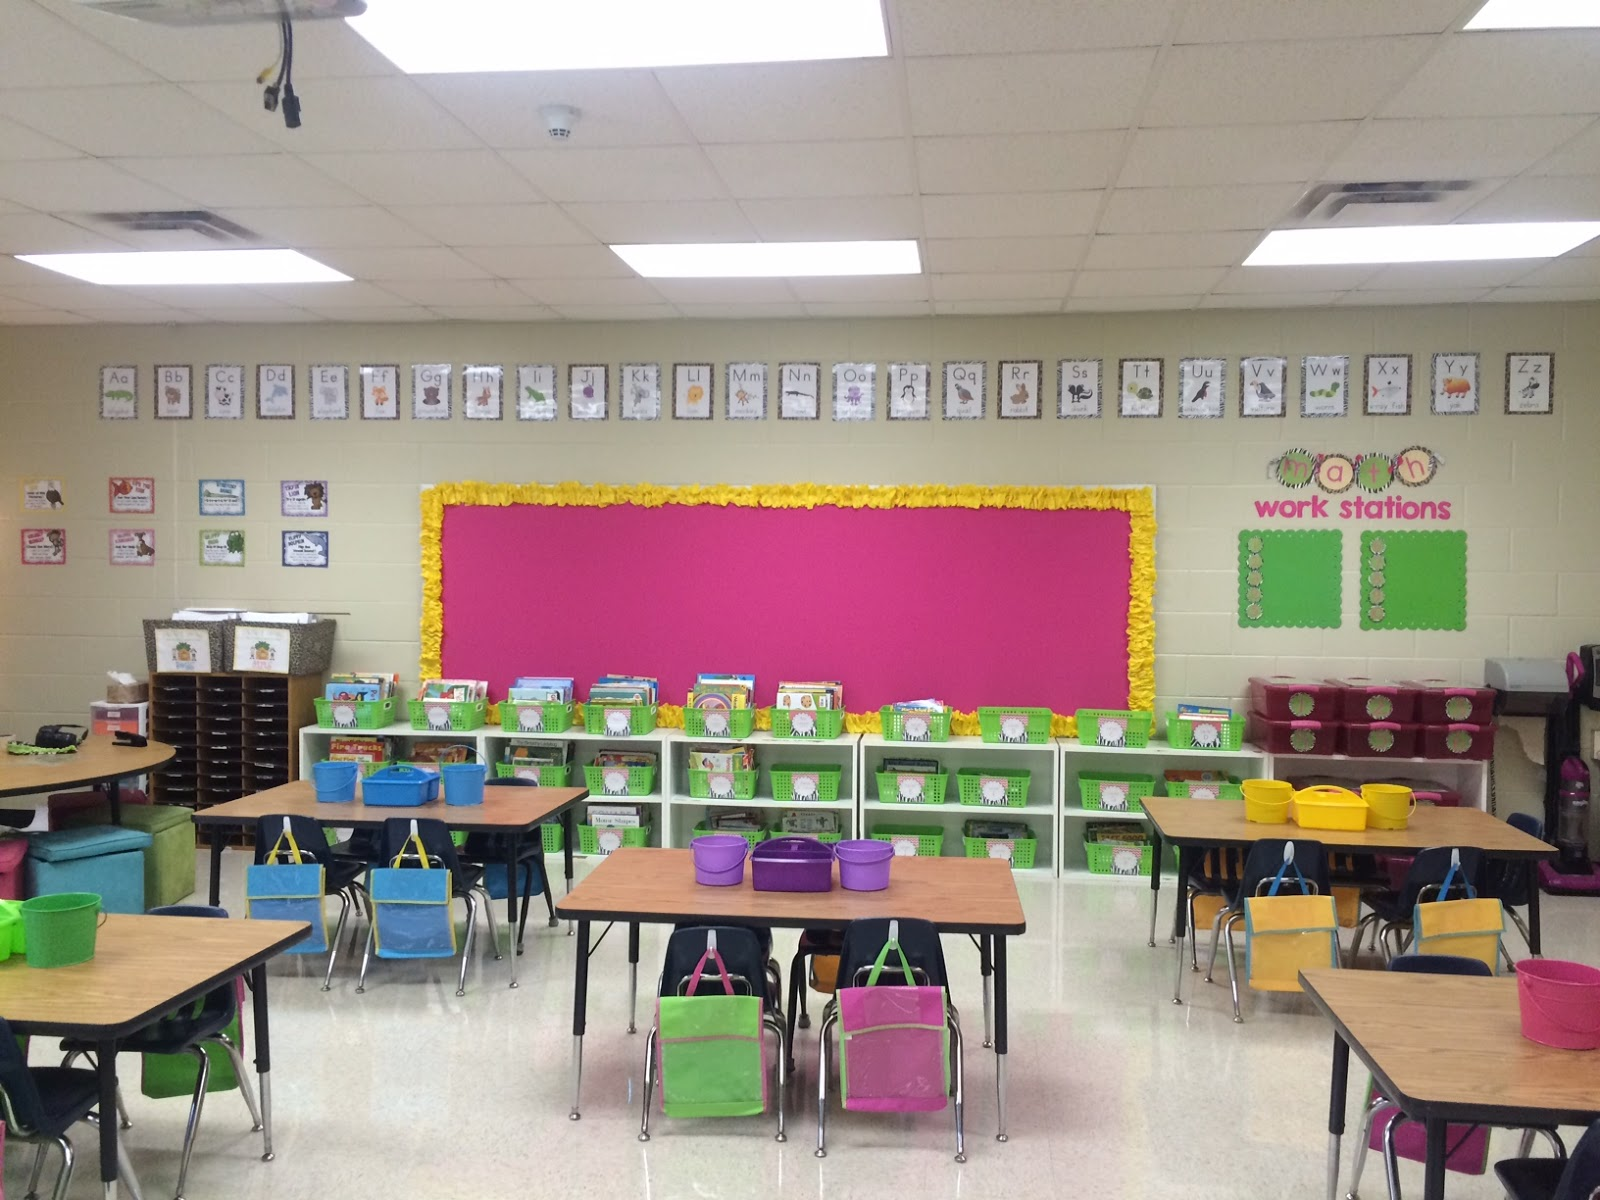 Castles and Crayons: Classroom Setup 2015 - Day Two